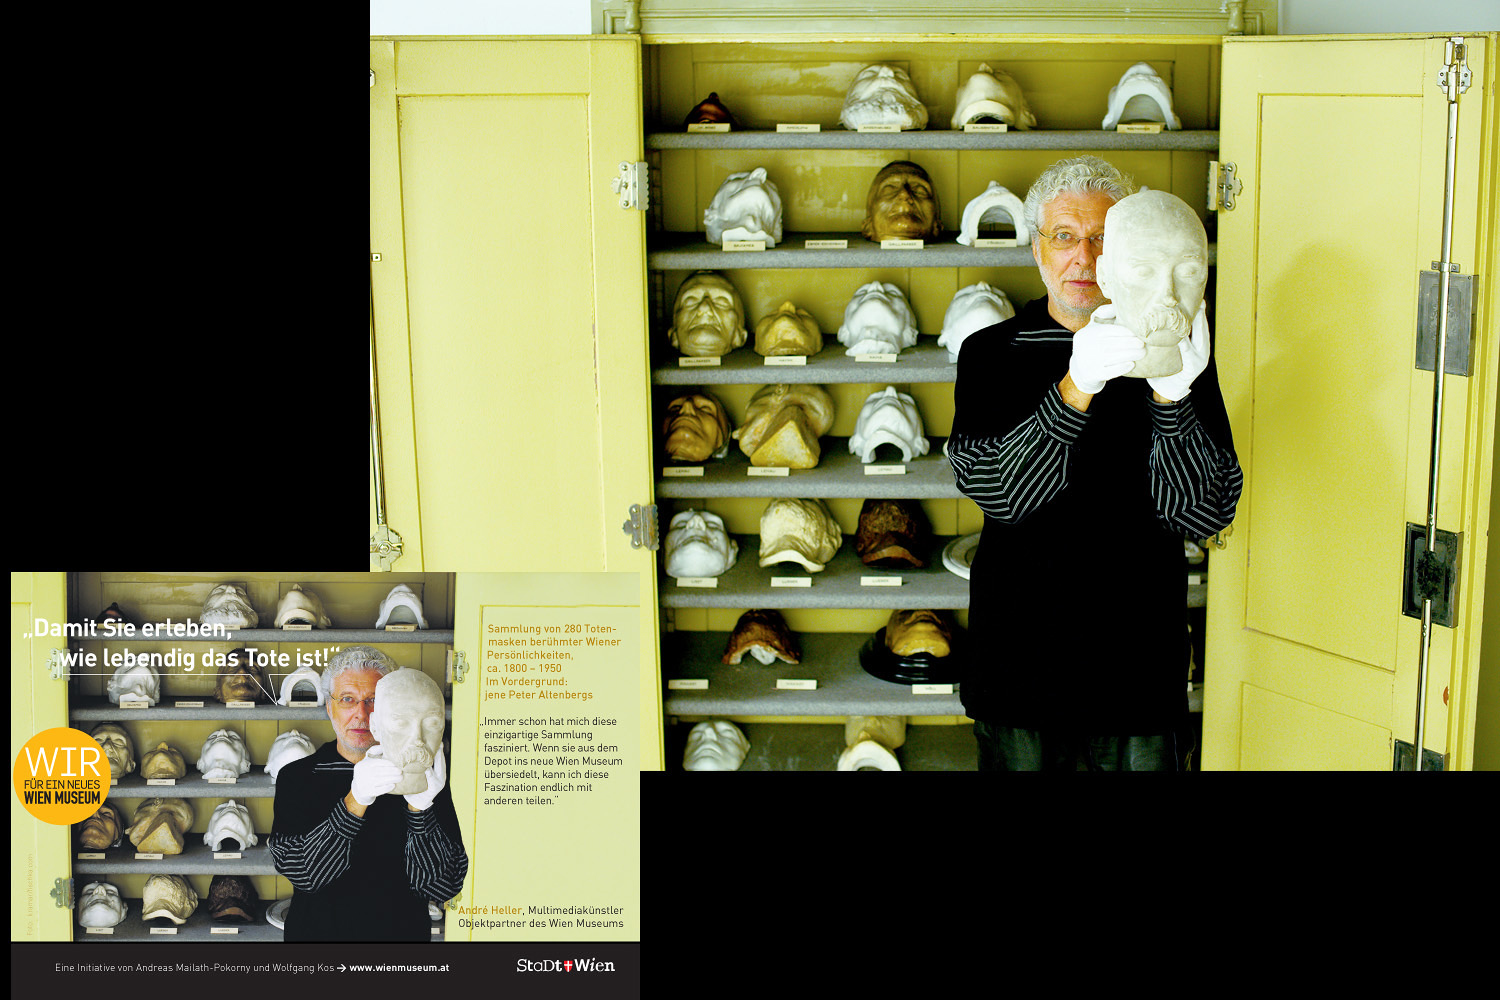 [:de]André Heller mit der Totenmaske von Peter Altenberg für das Wien Museum[:en]André Heller with the death mask of Peter Altenberg for the Wien Museum